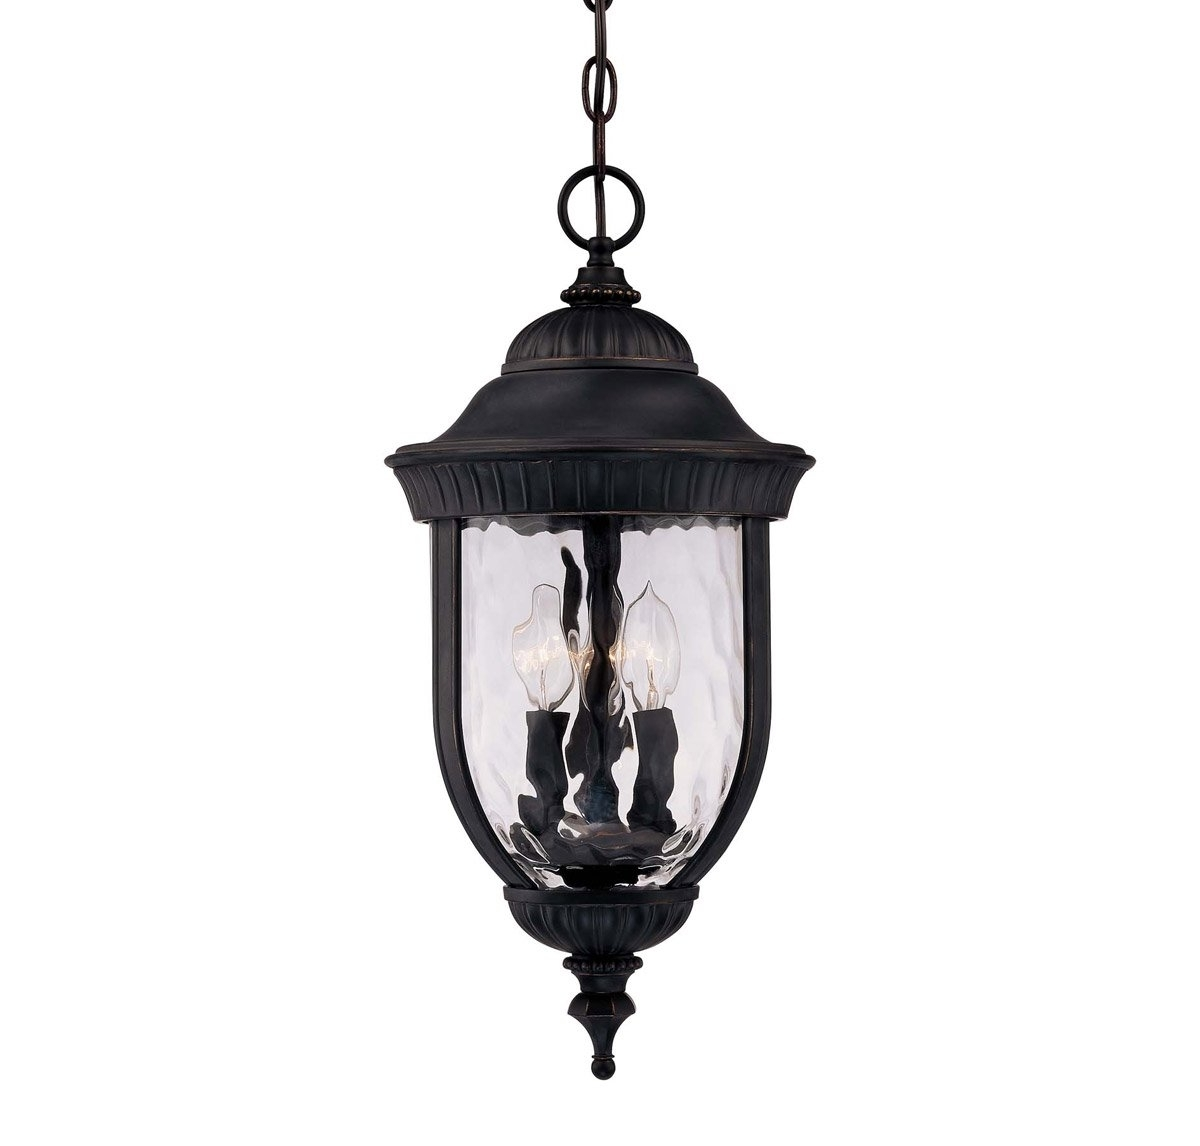 Newest Savoy House Lighting 5 60328 186 Castlemain 3 Light 10 Inch Black Throughout Gold Outdoor Lanterns (View 12 of 20)